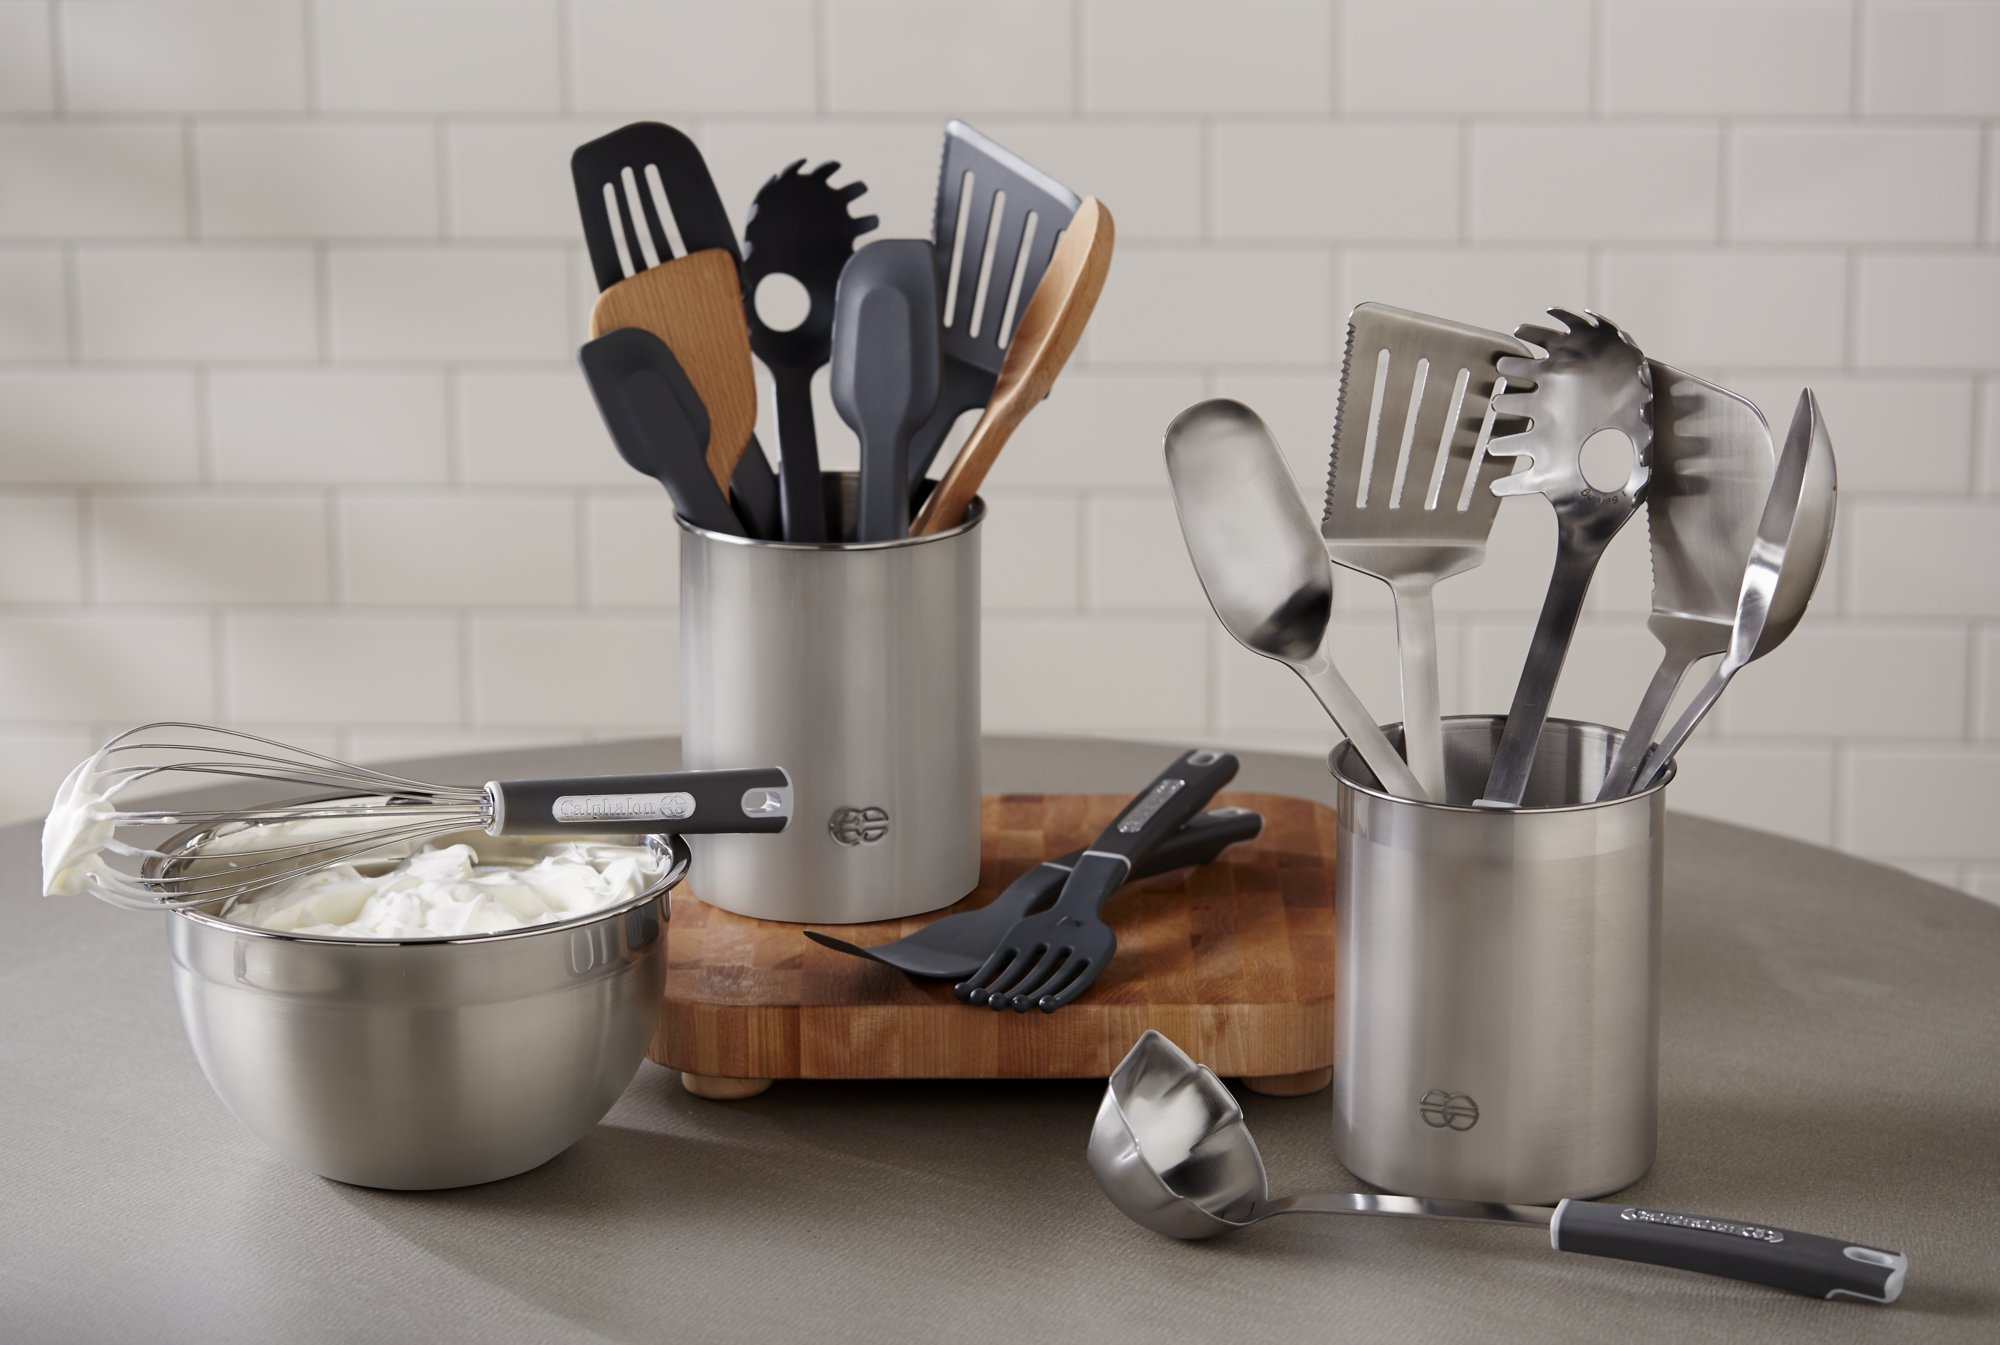 Calphalon Cookware Cutlery Bakeware Kitchenware Amp More